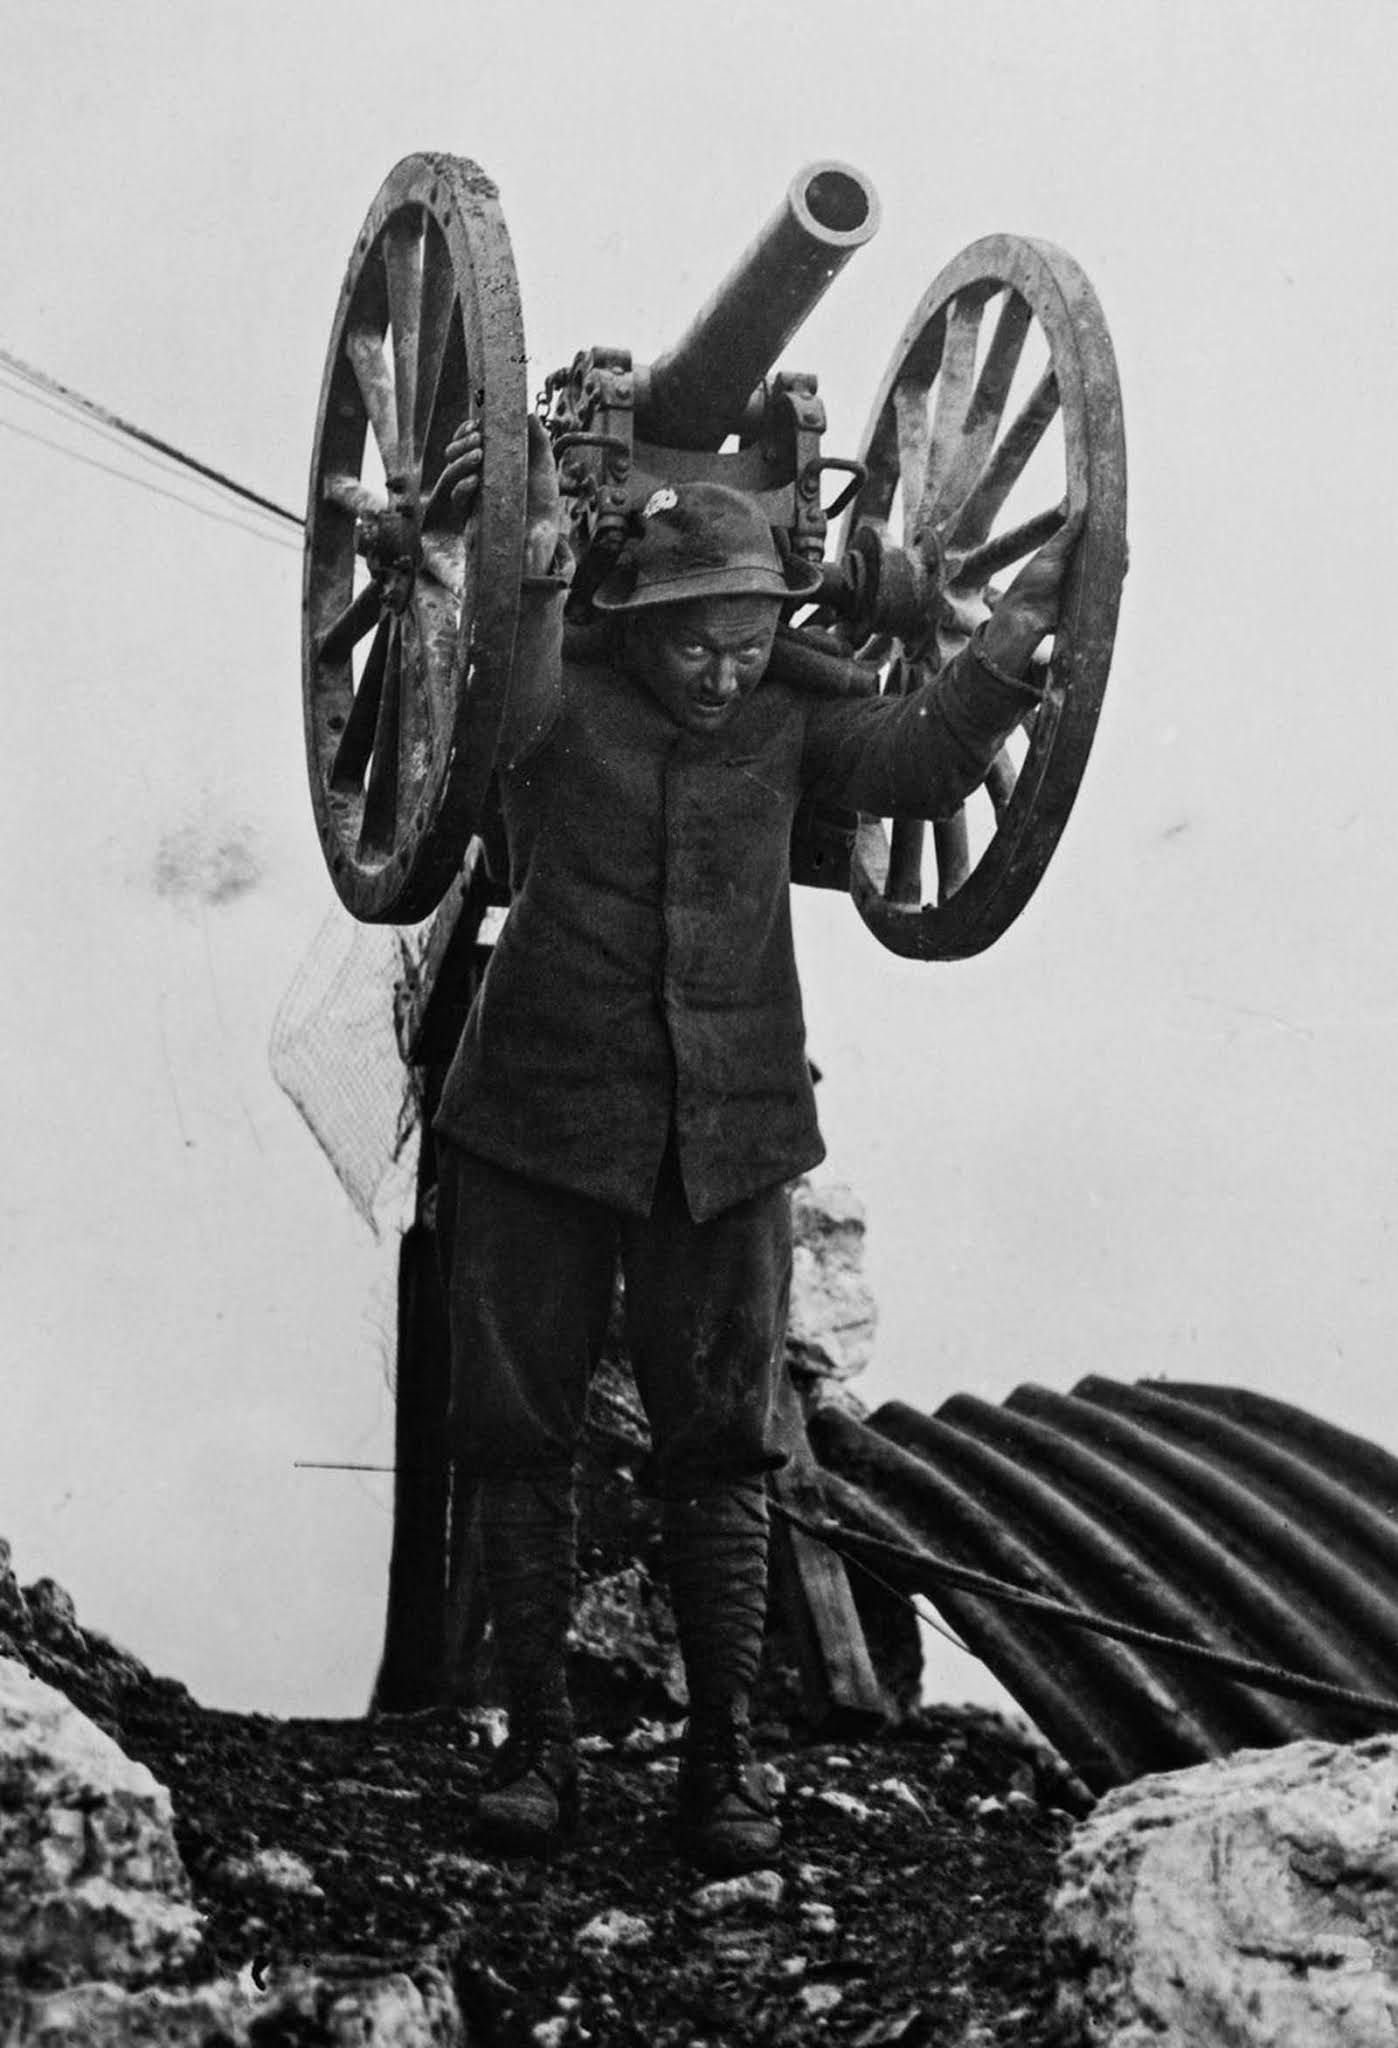 A soldier carries a field gun to higher ground. 1916.